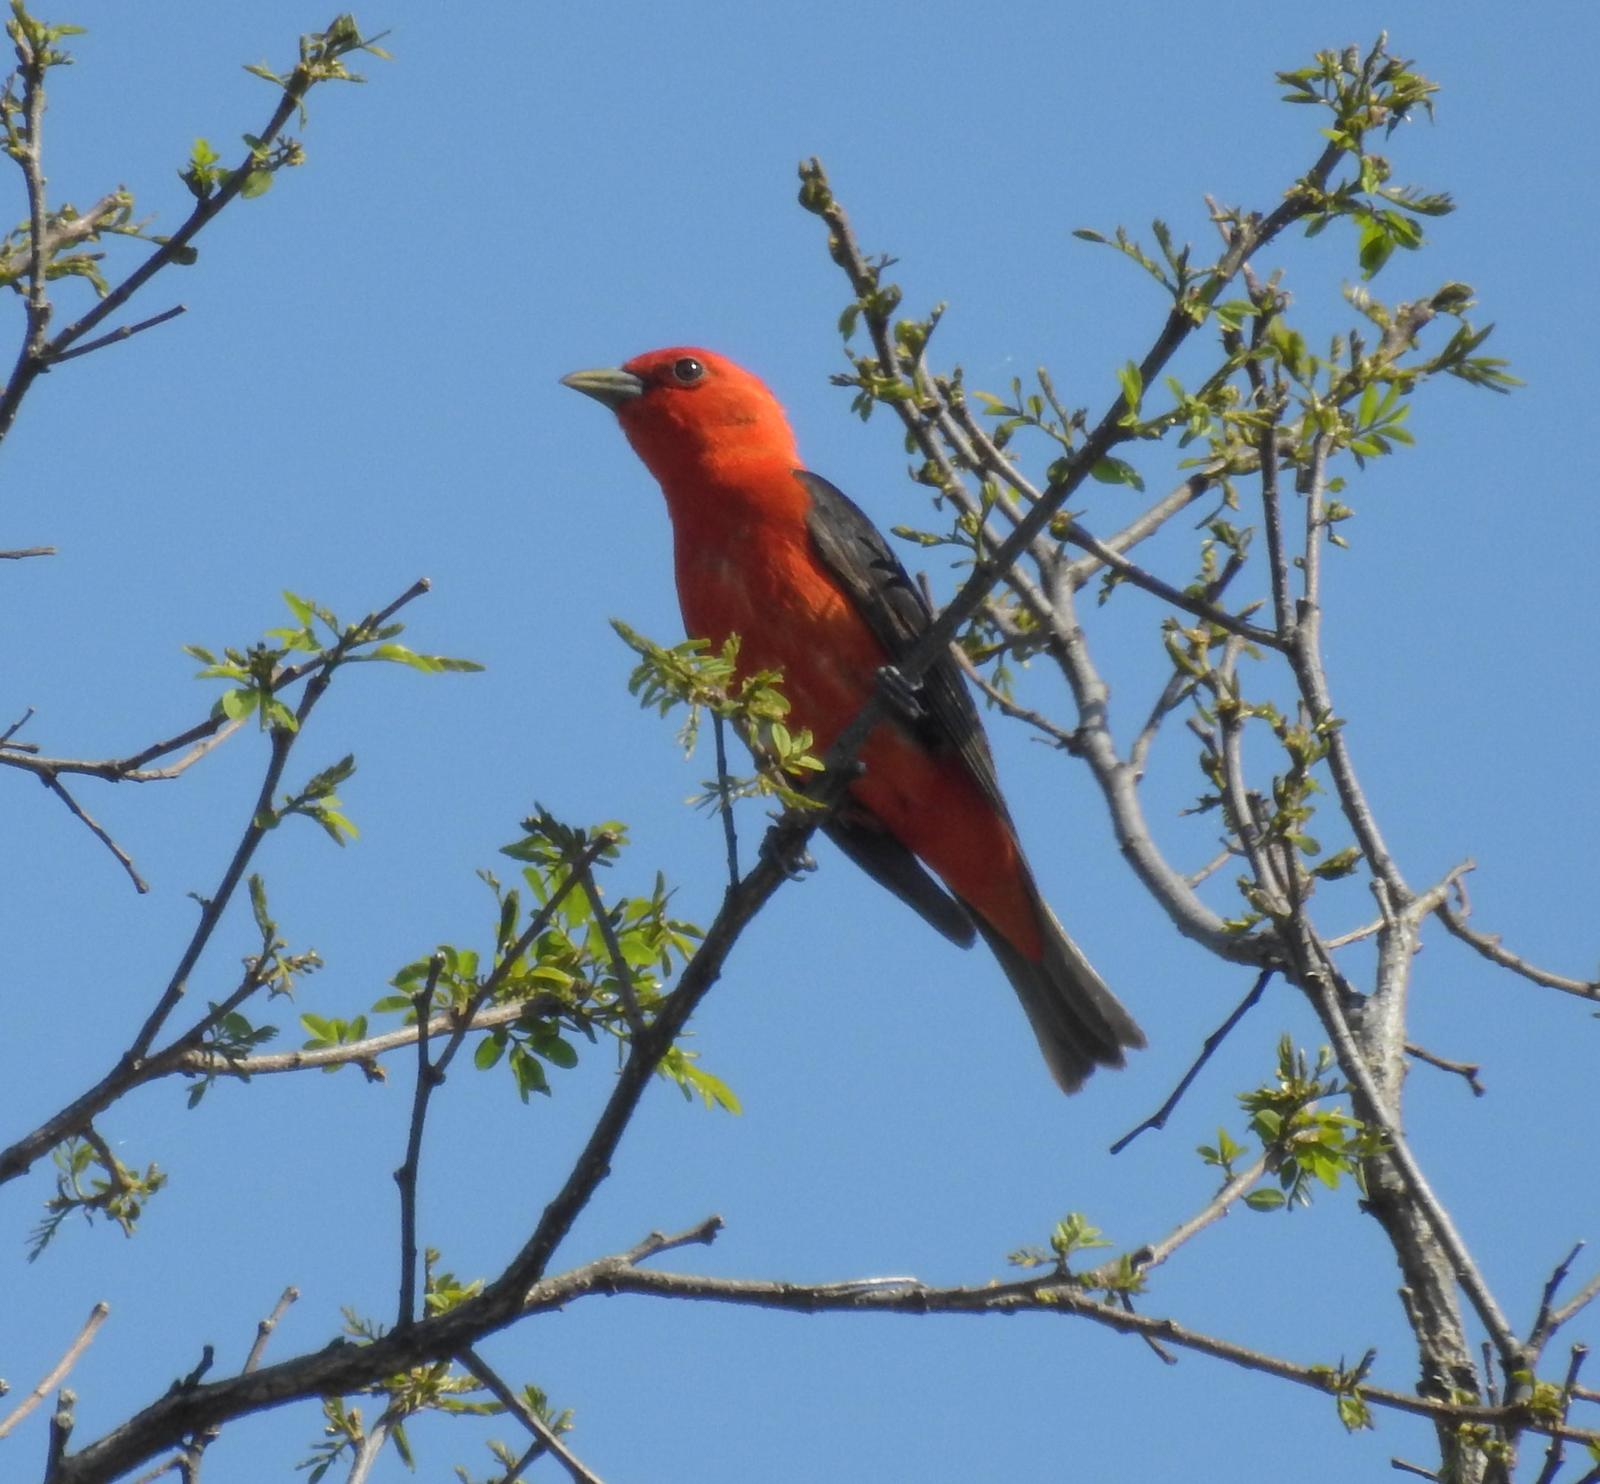 Scarlet Tanager Photo by John Licharson